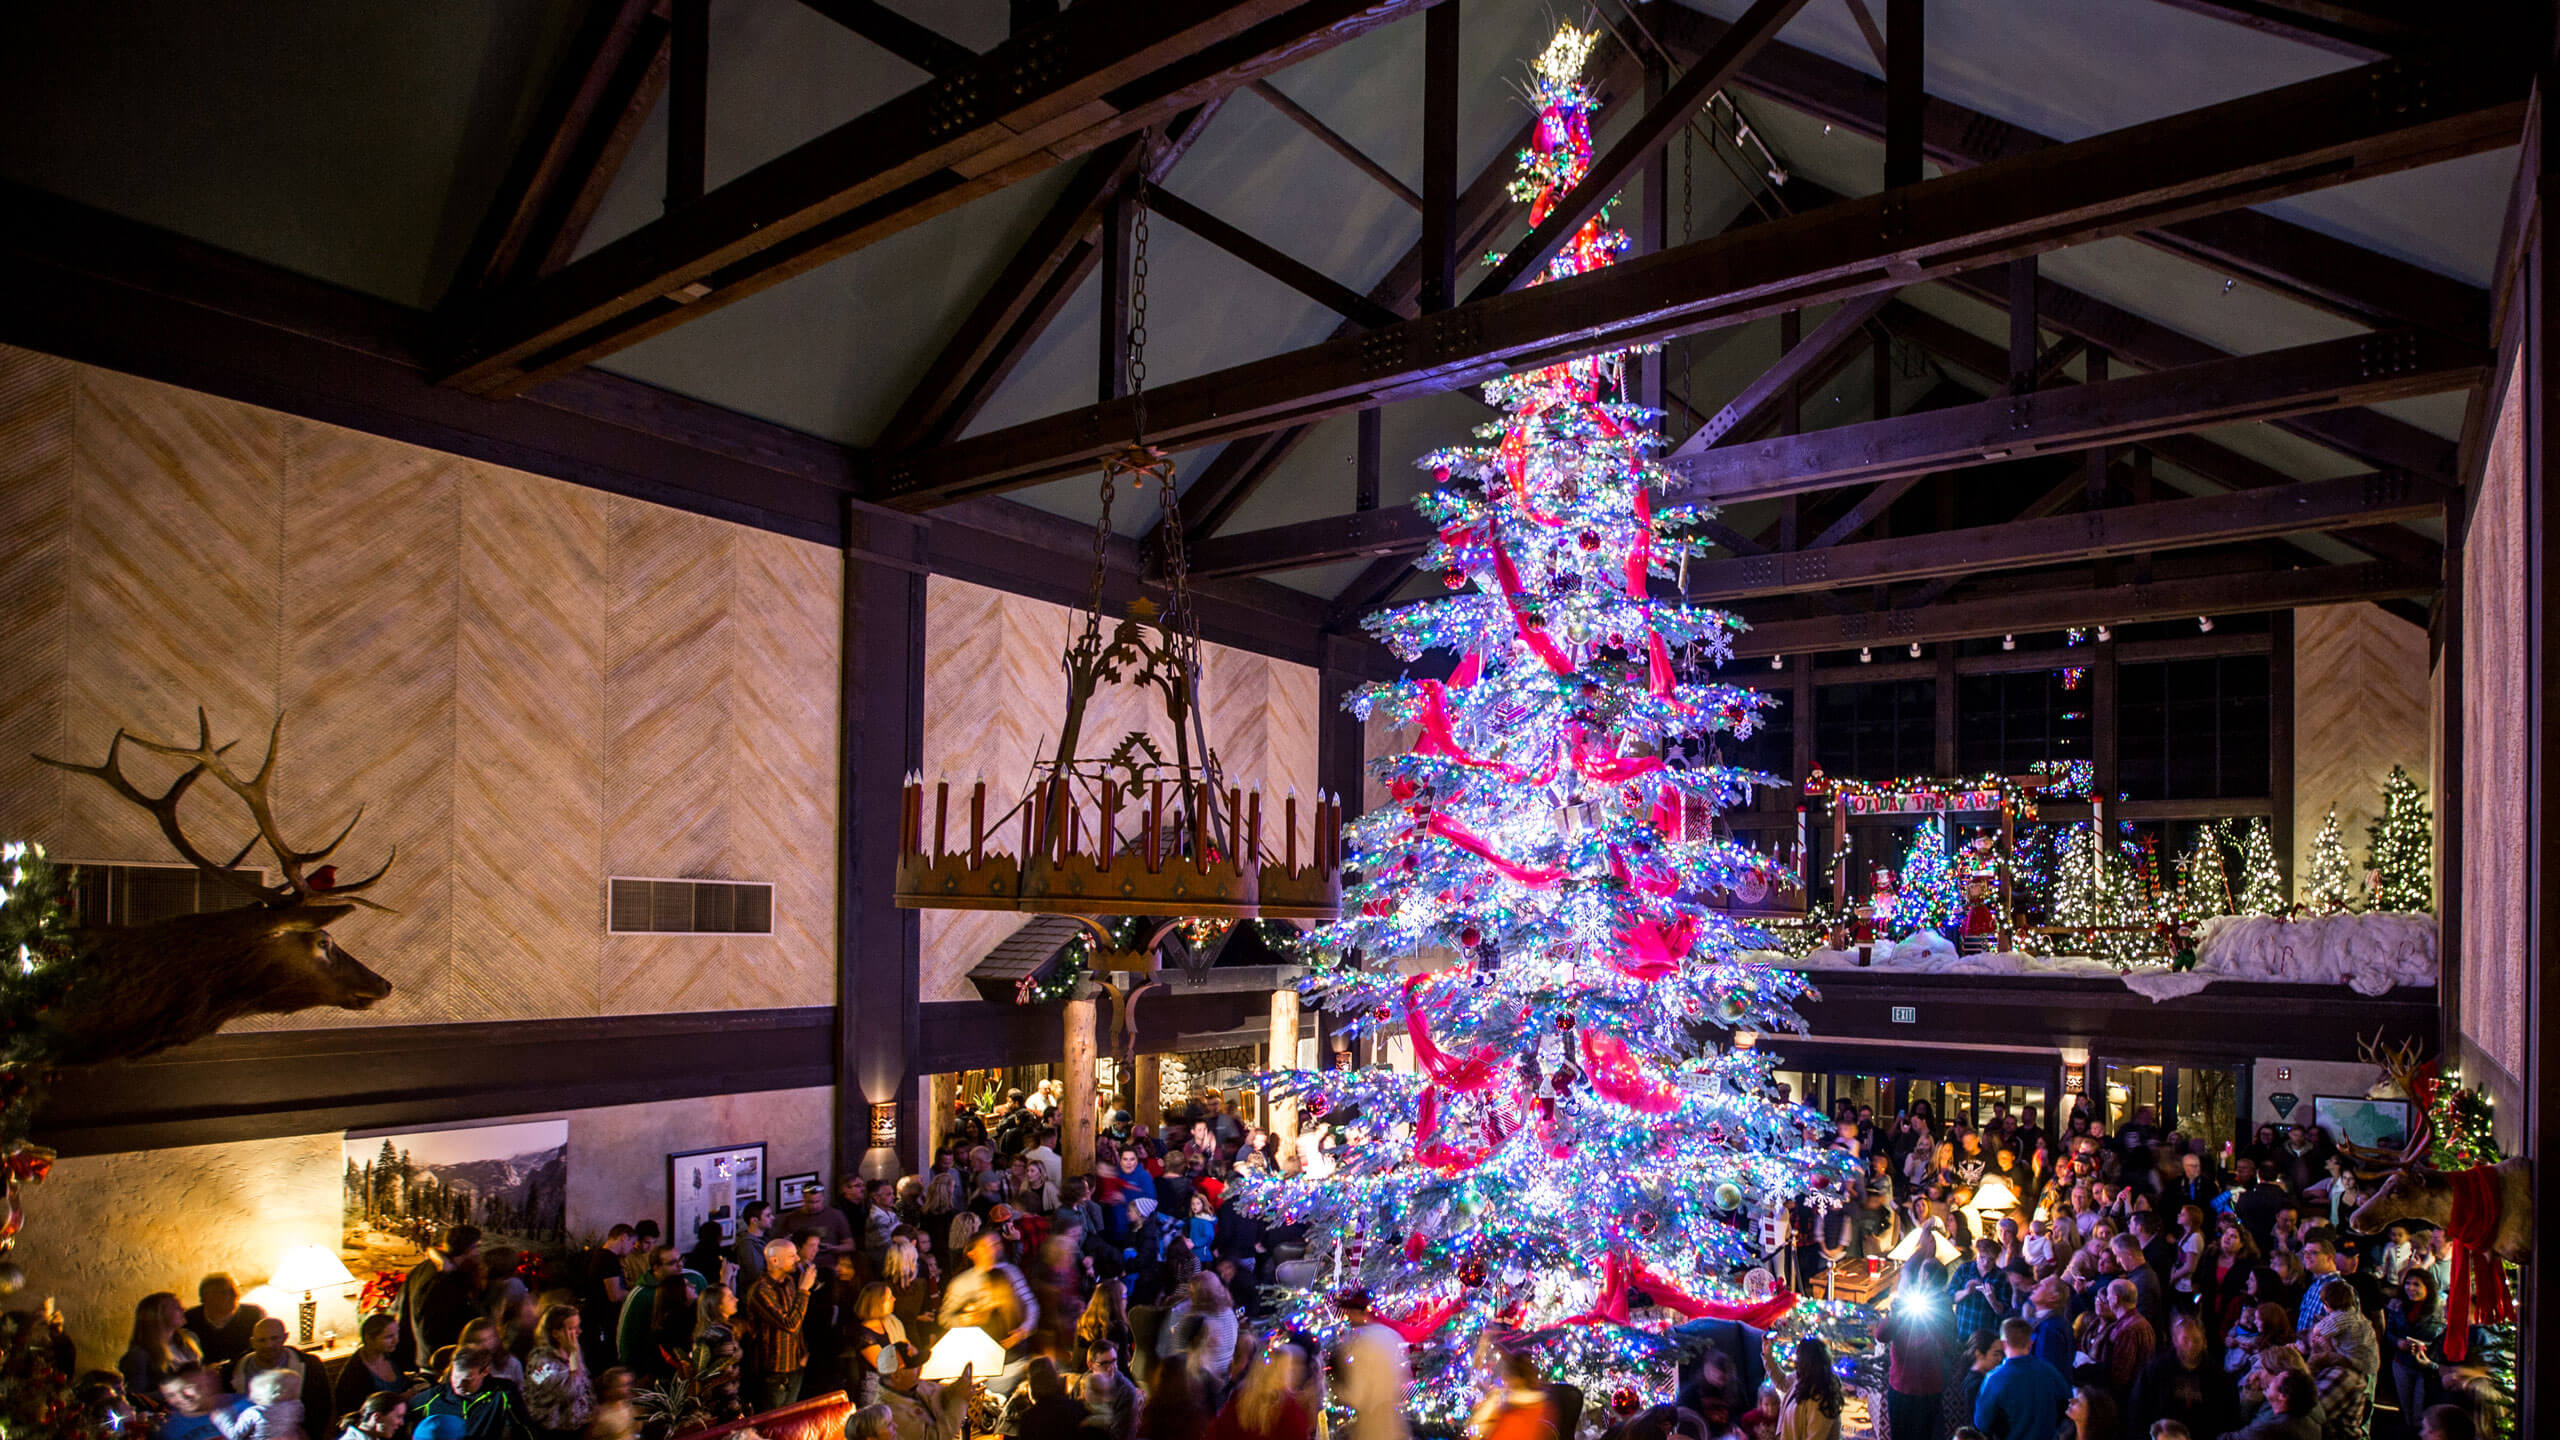 Tenaya Lodge Christmas Tree Lighting Ceremony